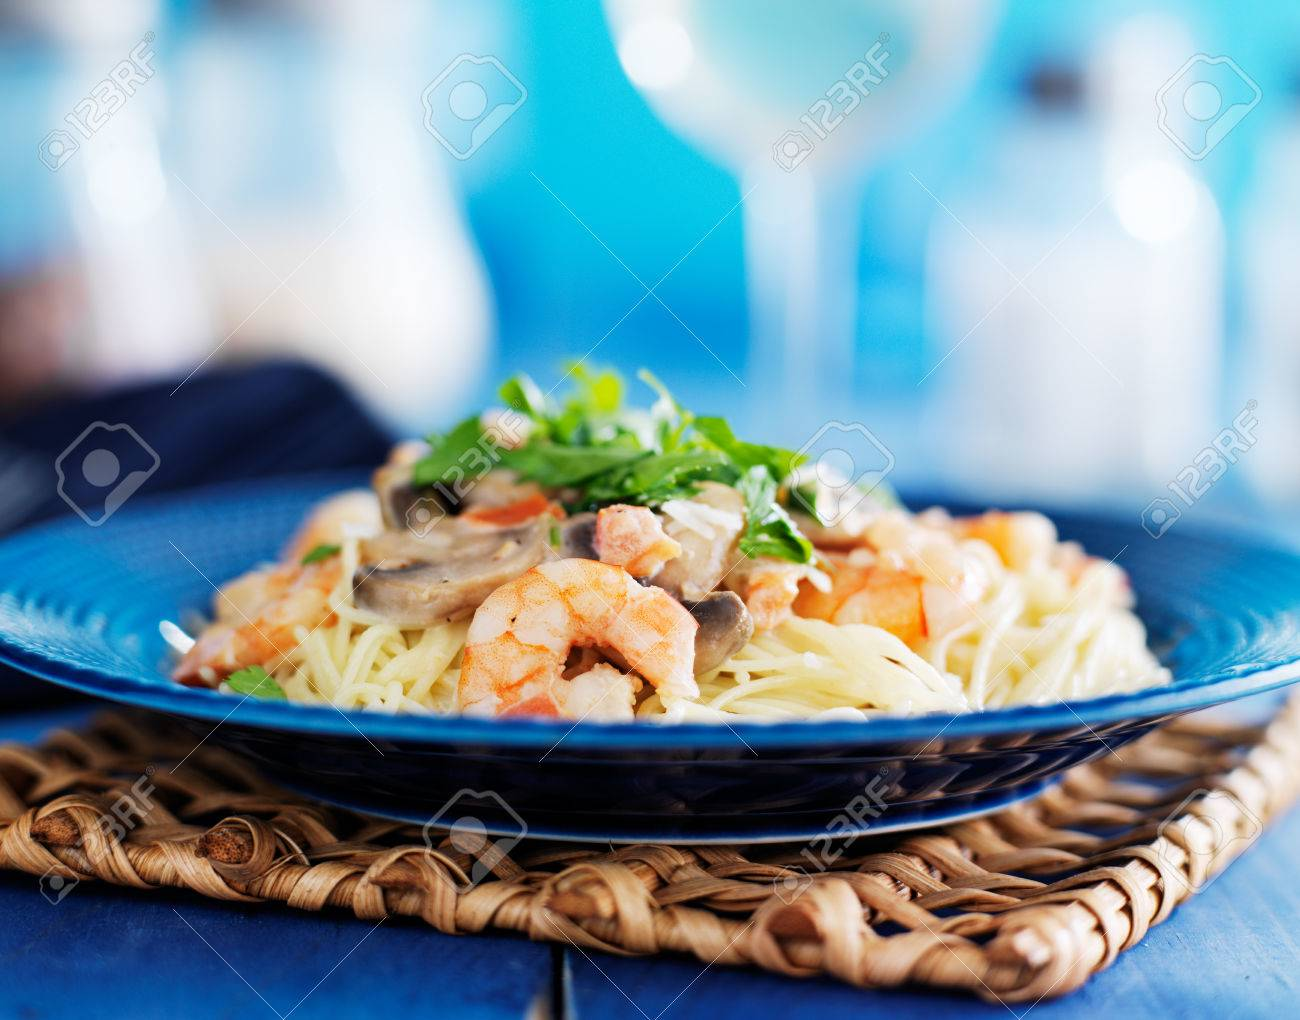 Shrimp Angel Hair Pasta With Mushrooms And Parsley In Champagne